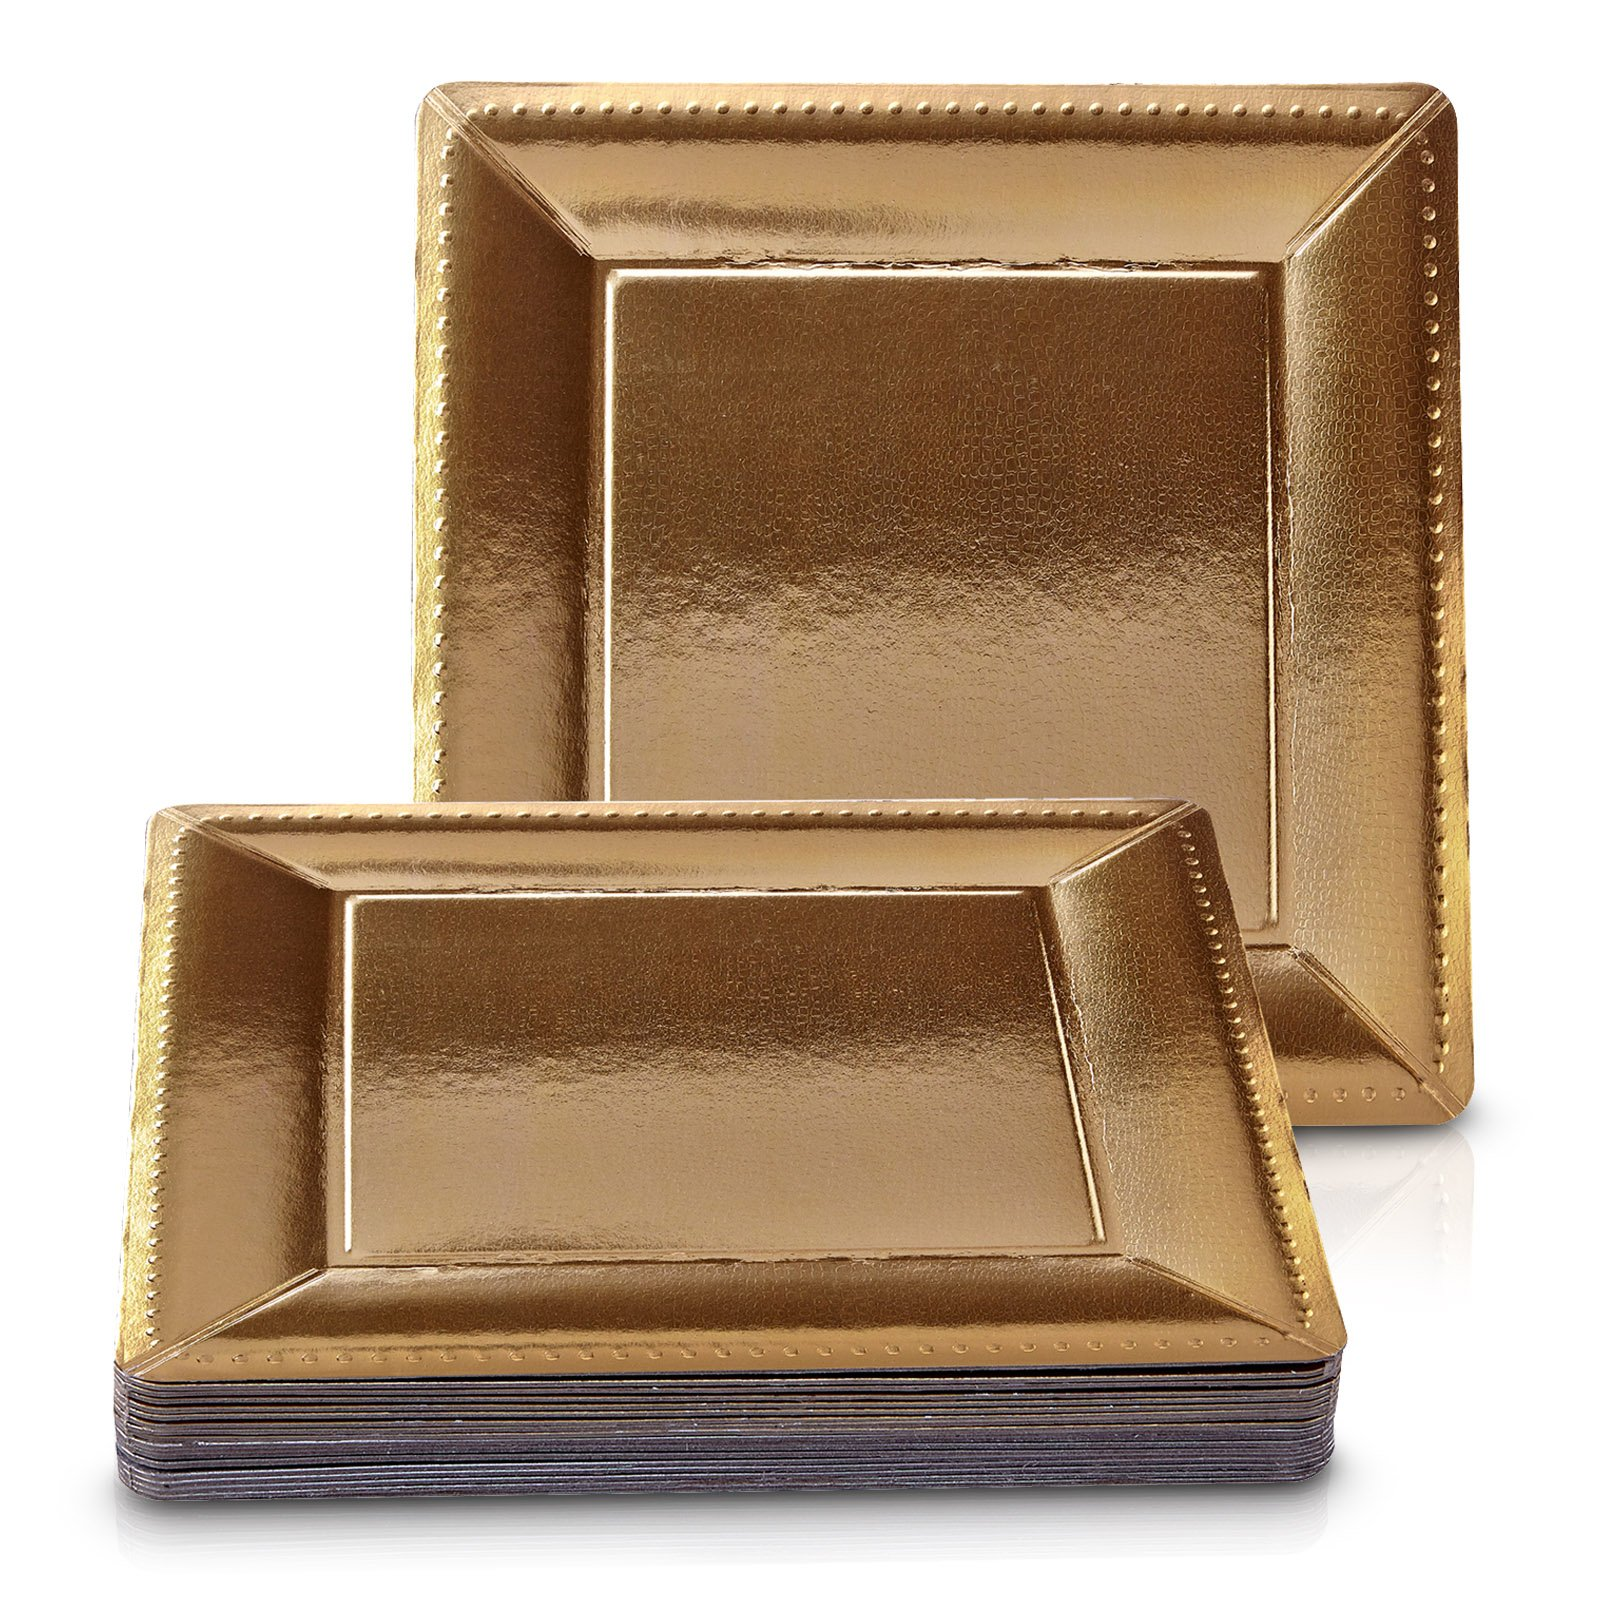 DISPOSABLE SQUARE CHARGER PLATES - 20pc (Metallic/Gold) by Silver Spoons (Image #1)